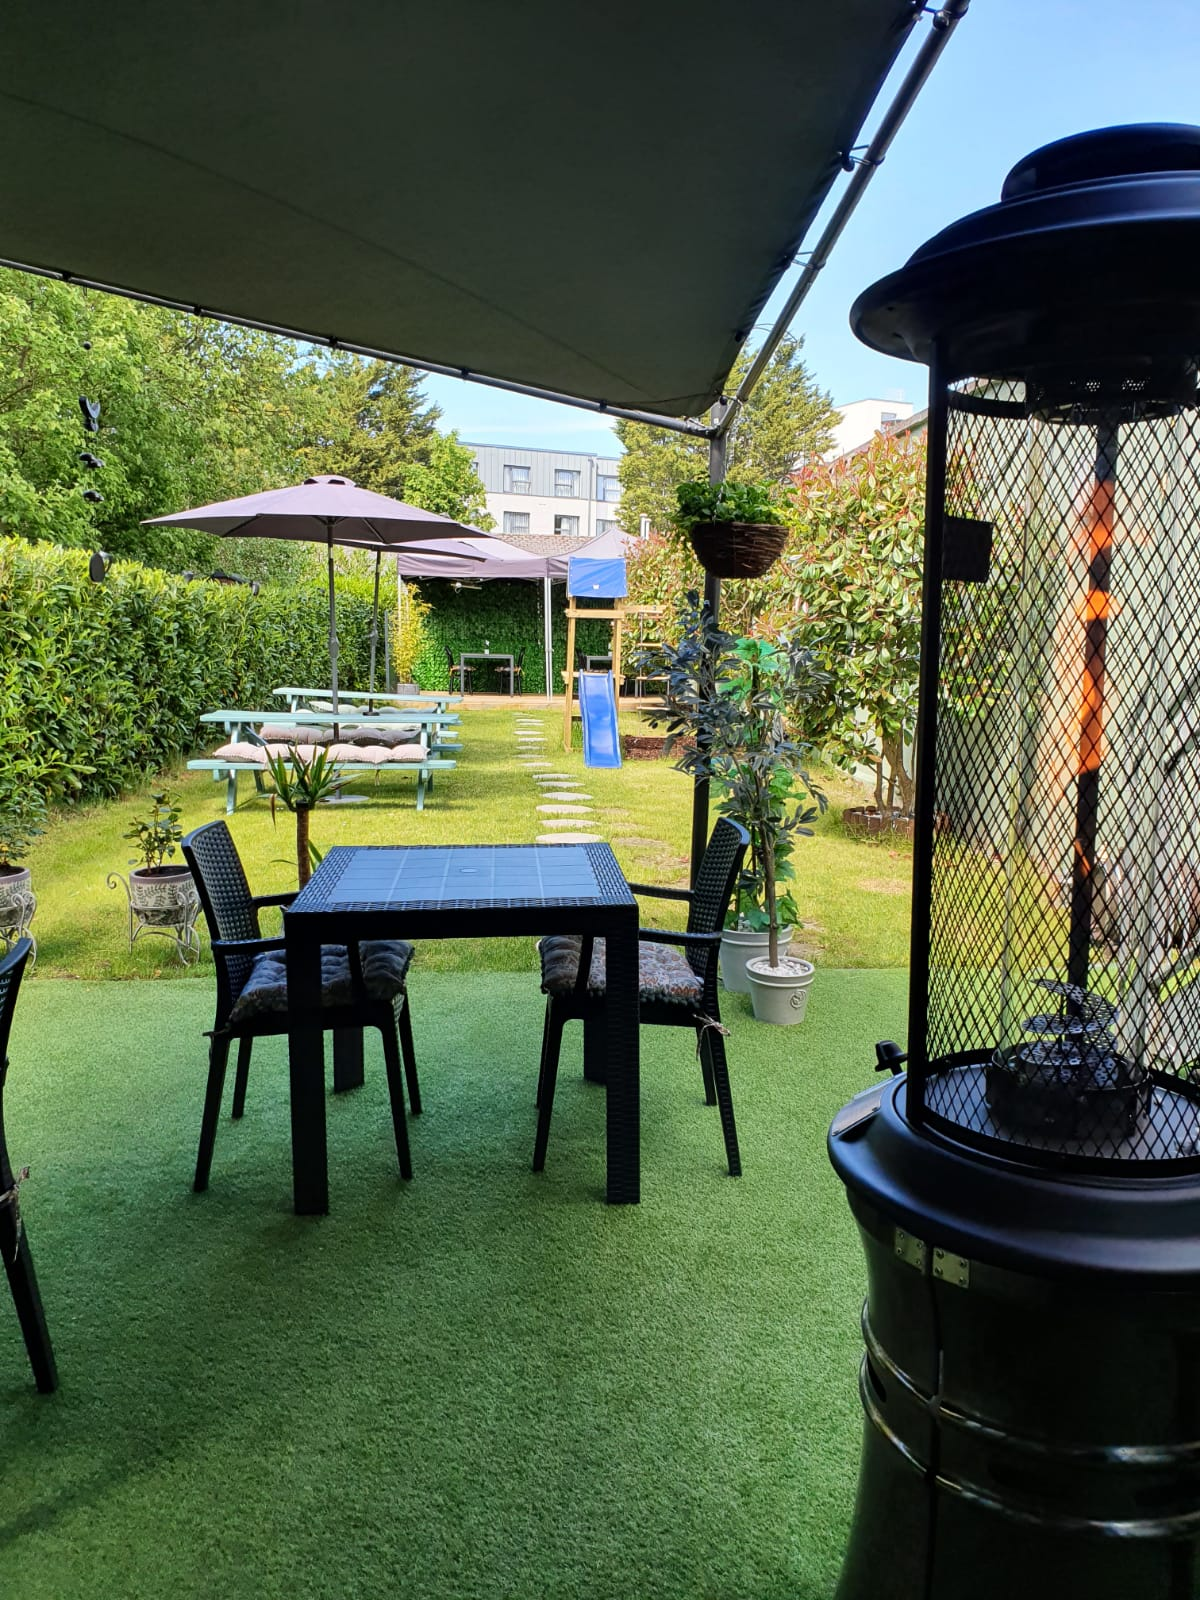 Beer Garden - Tables and Fireplace - Outdoor Dinning - Wine House Restaurant